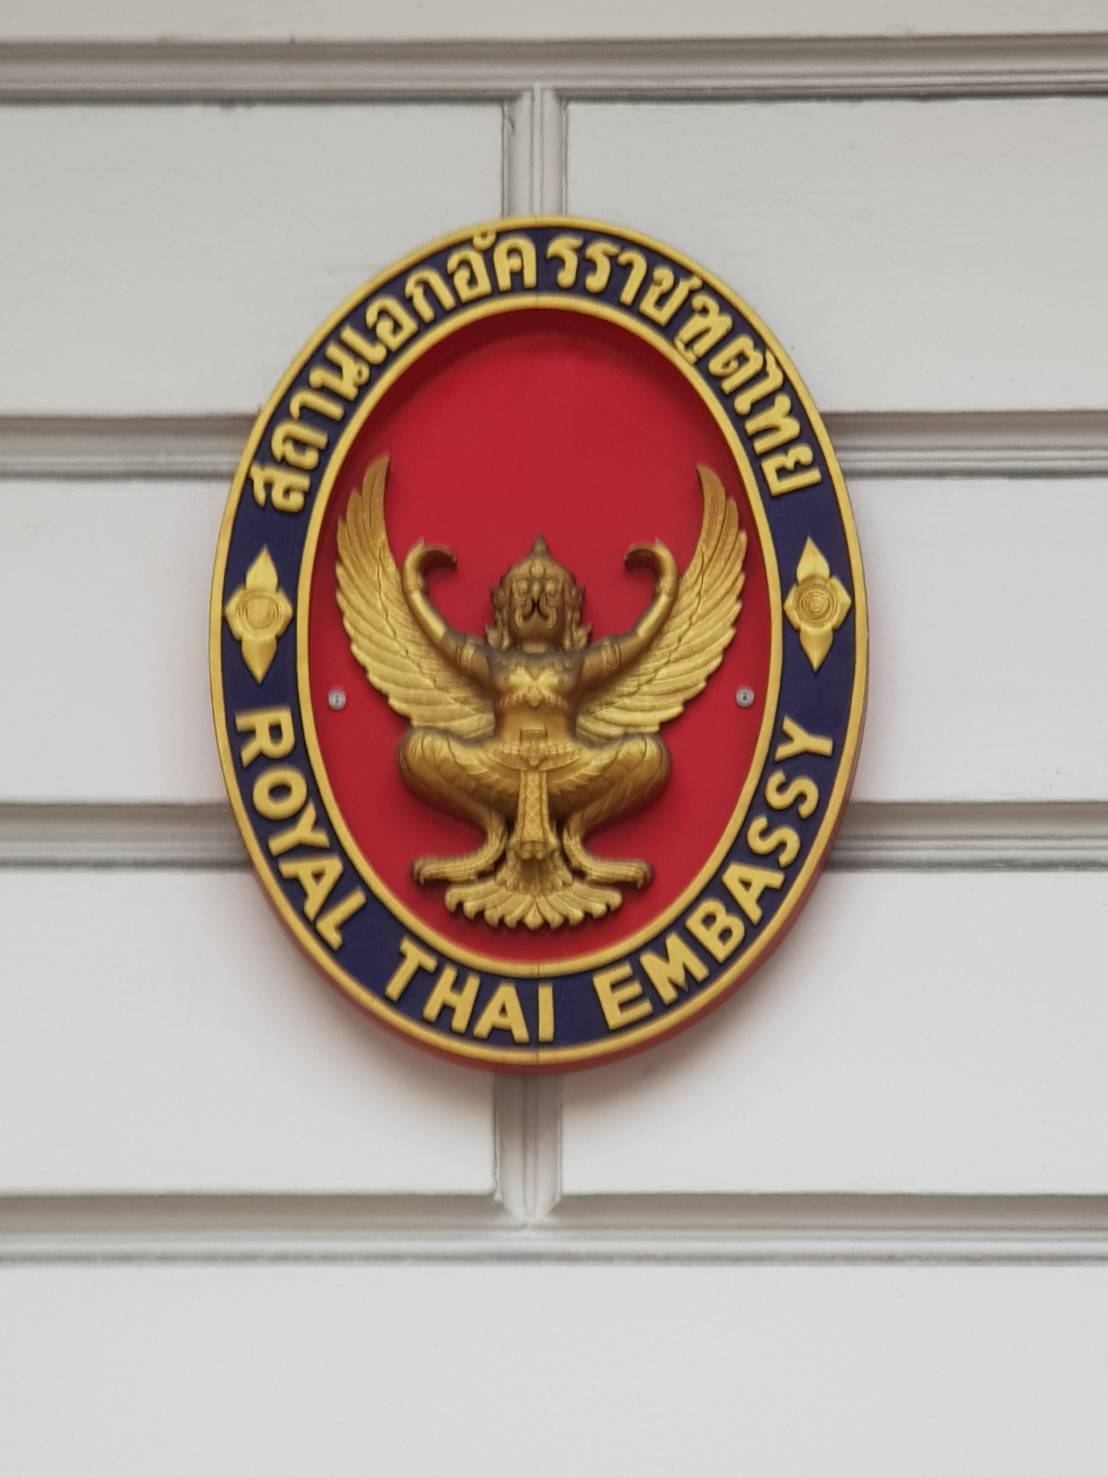 Multi-Entry, Non-Immigrant O Visas no longer issued at Thai Embassy in London